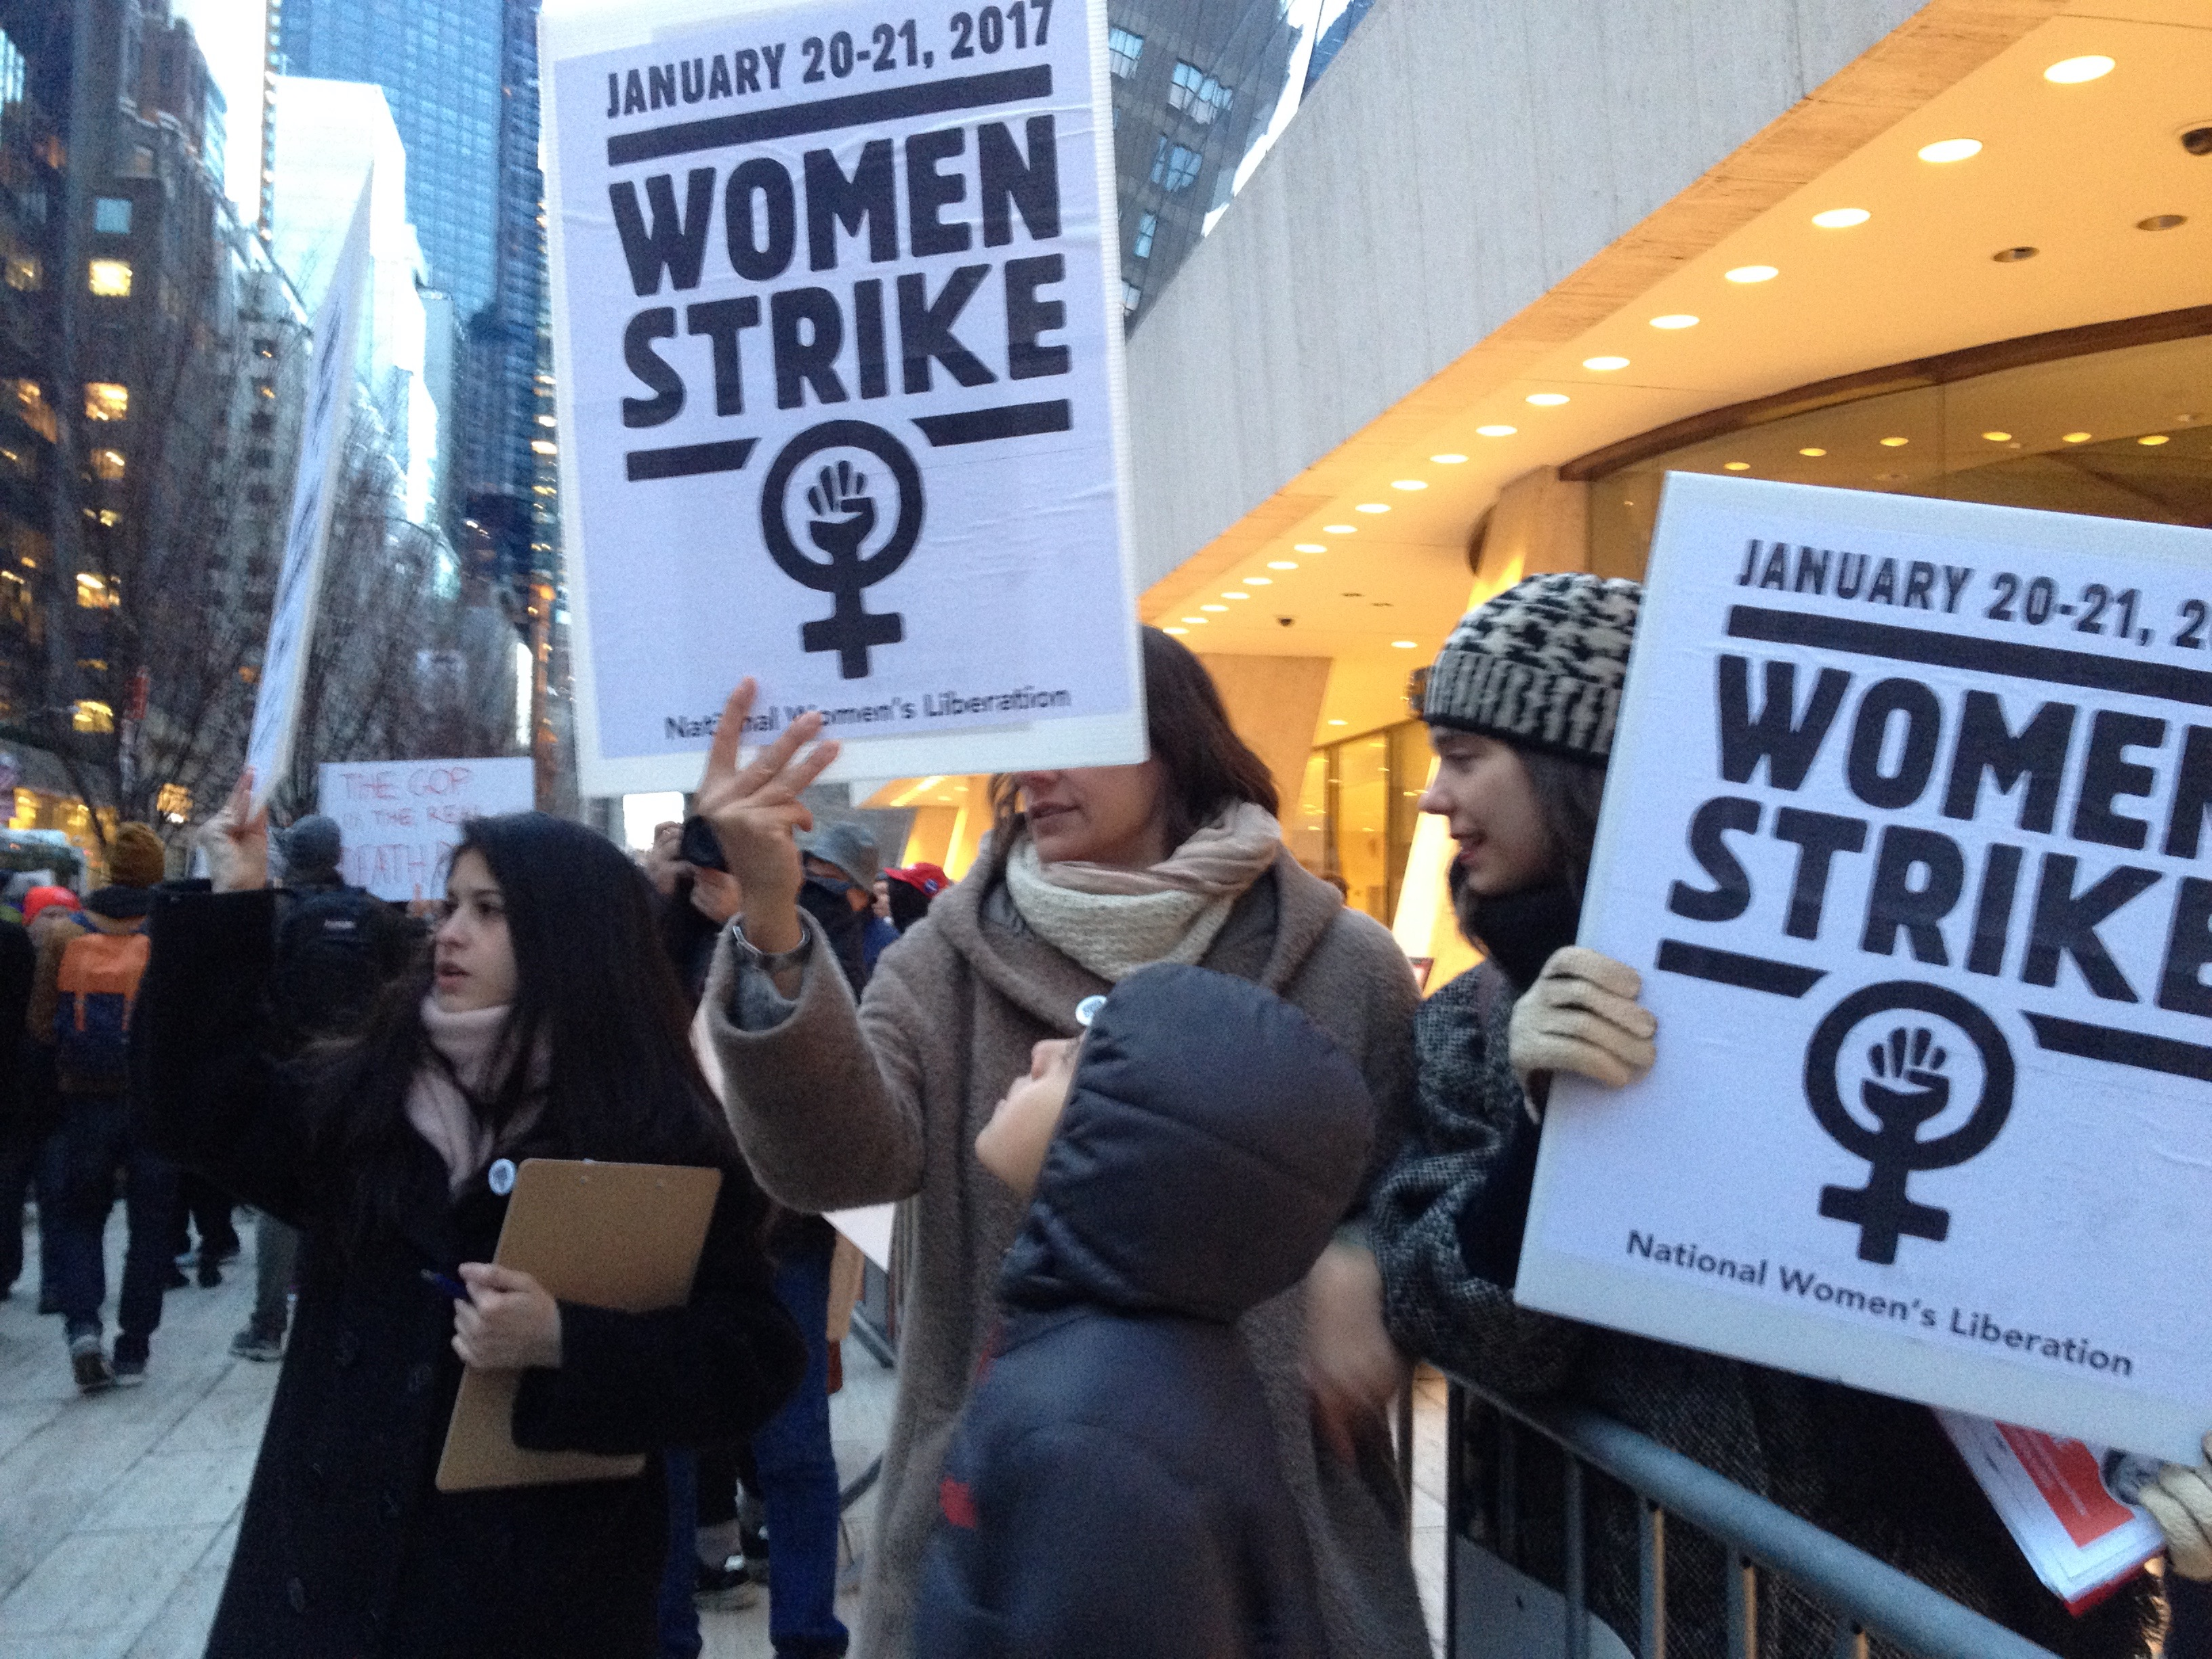 women.strike